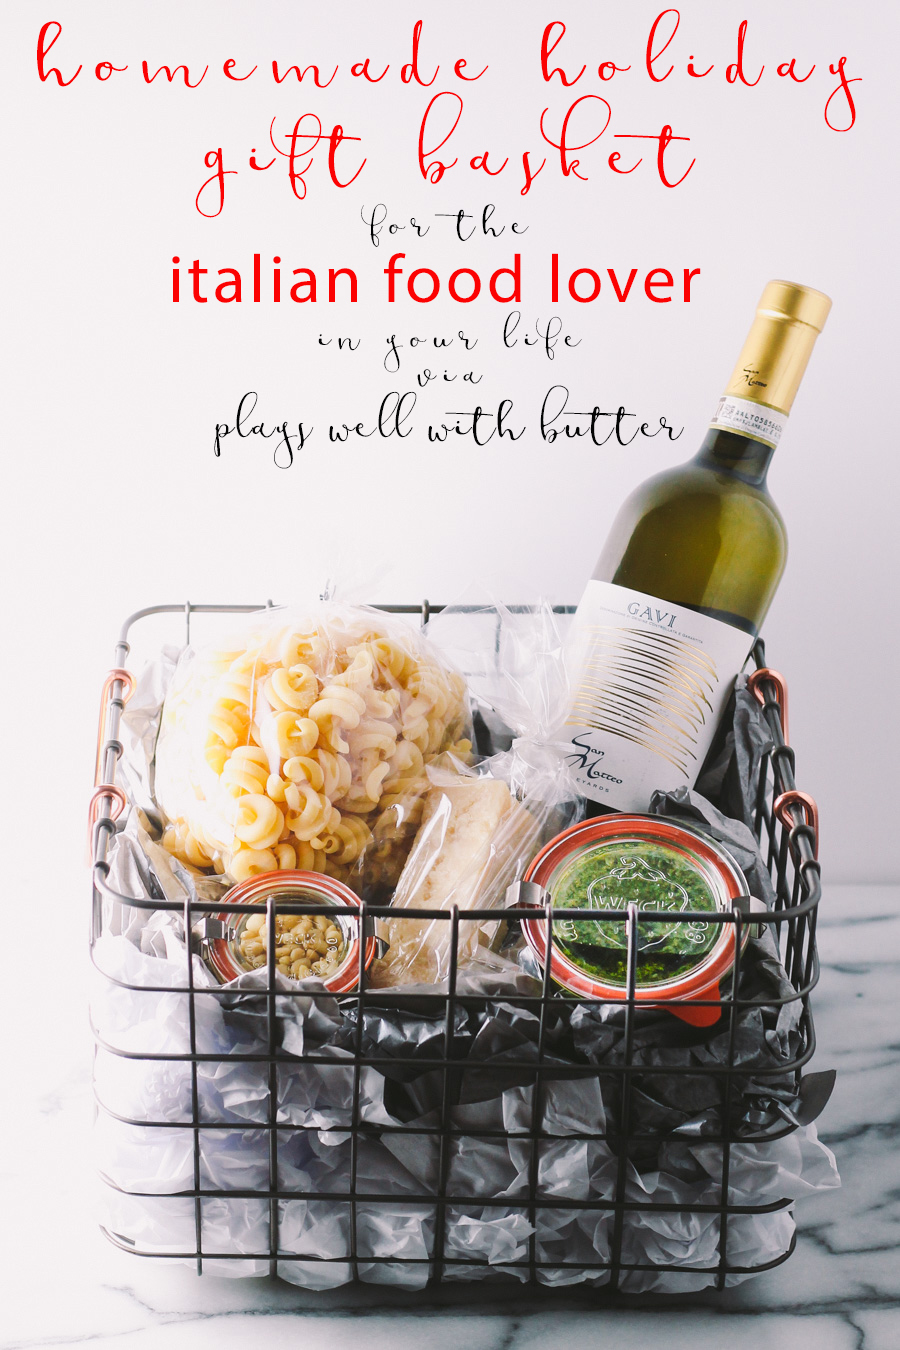 italian gift basket for the holidays via playswellwithbutter